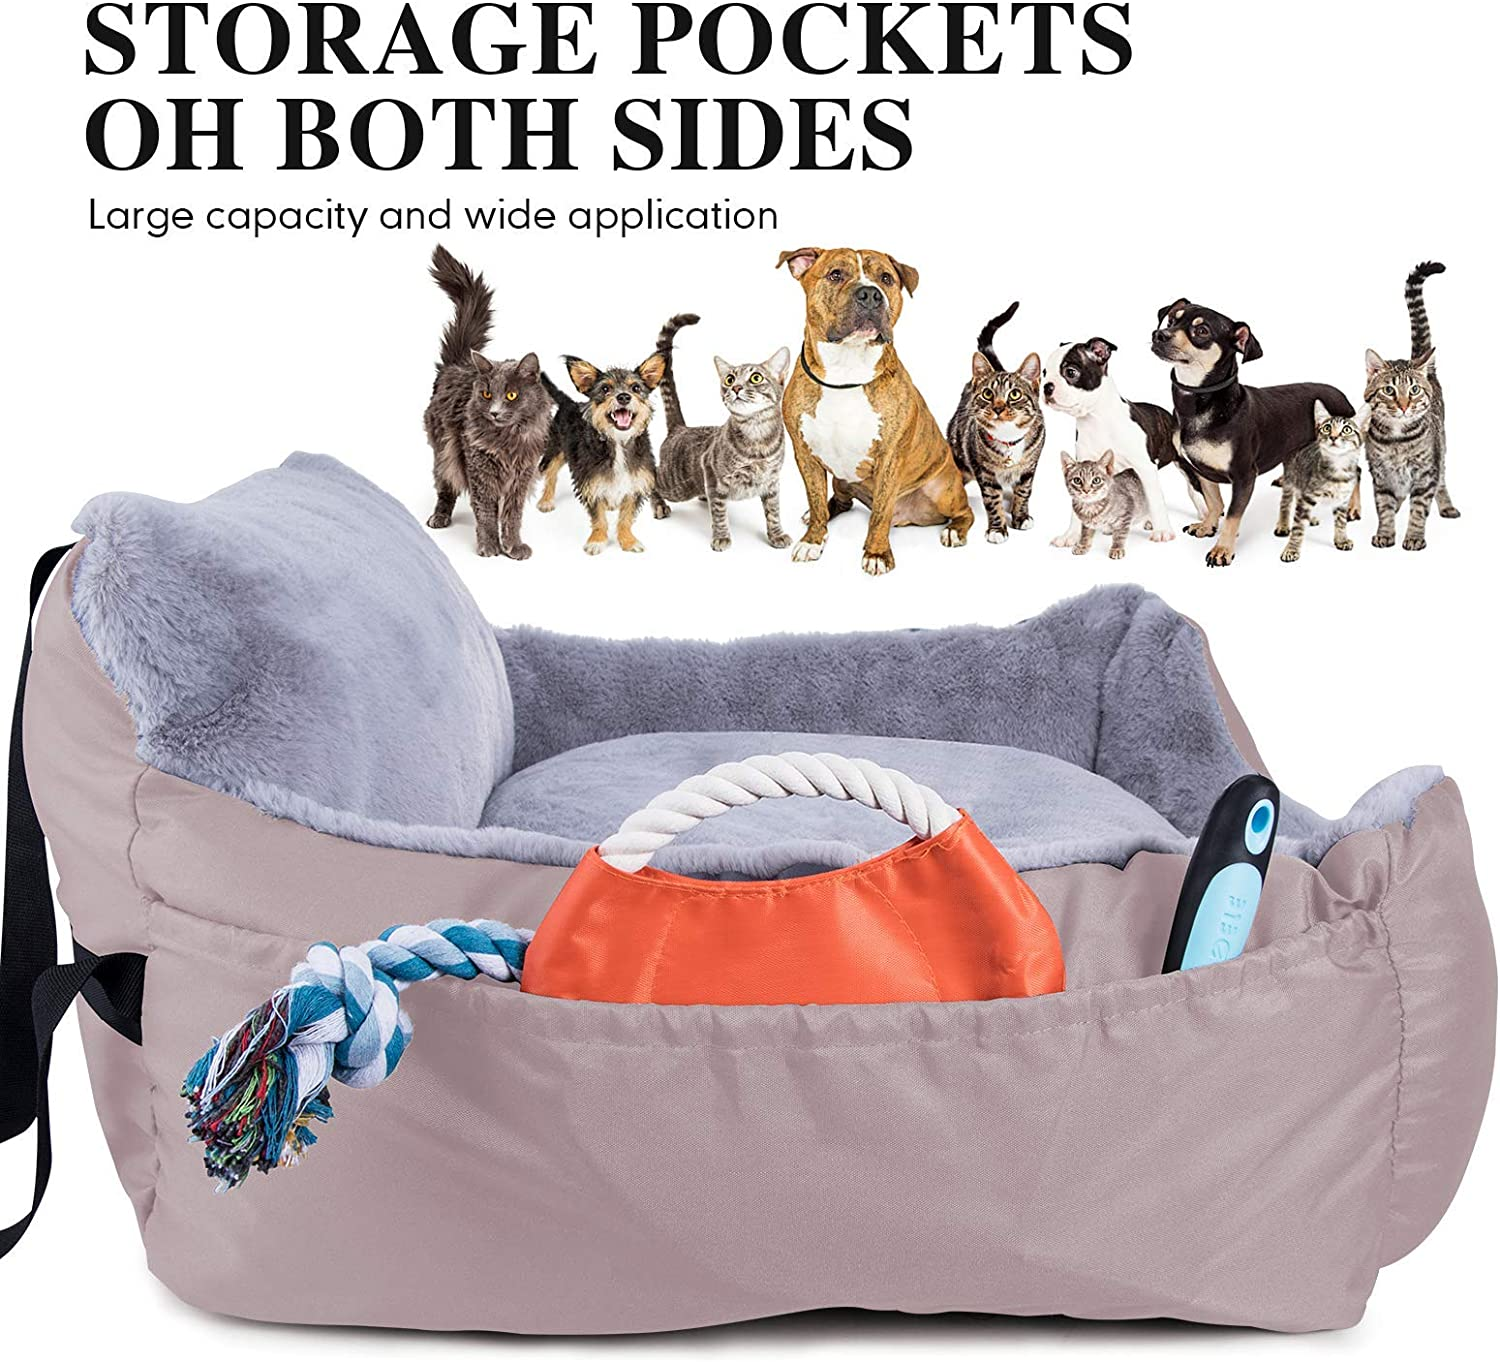 Oxford Soft Car Seat with Clip-on Safety Leash and Storage Pocket for Puppy Small Pet-Beige Dog Car Seat